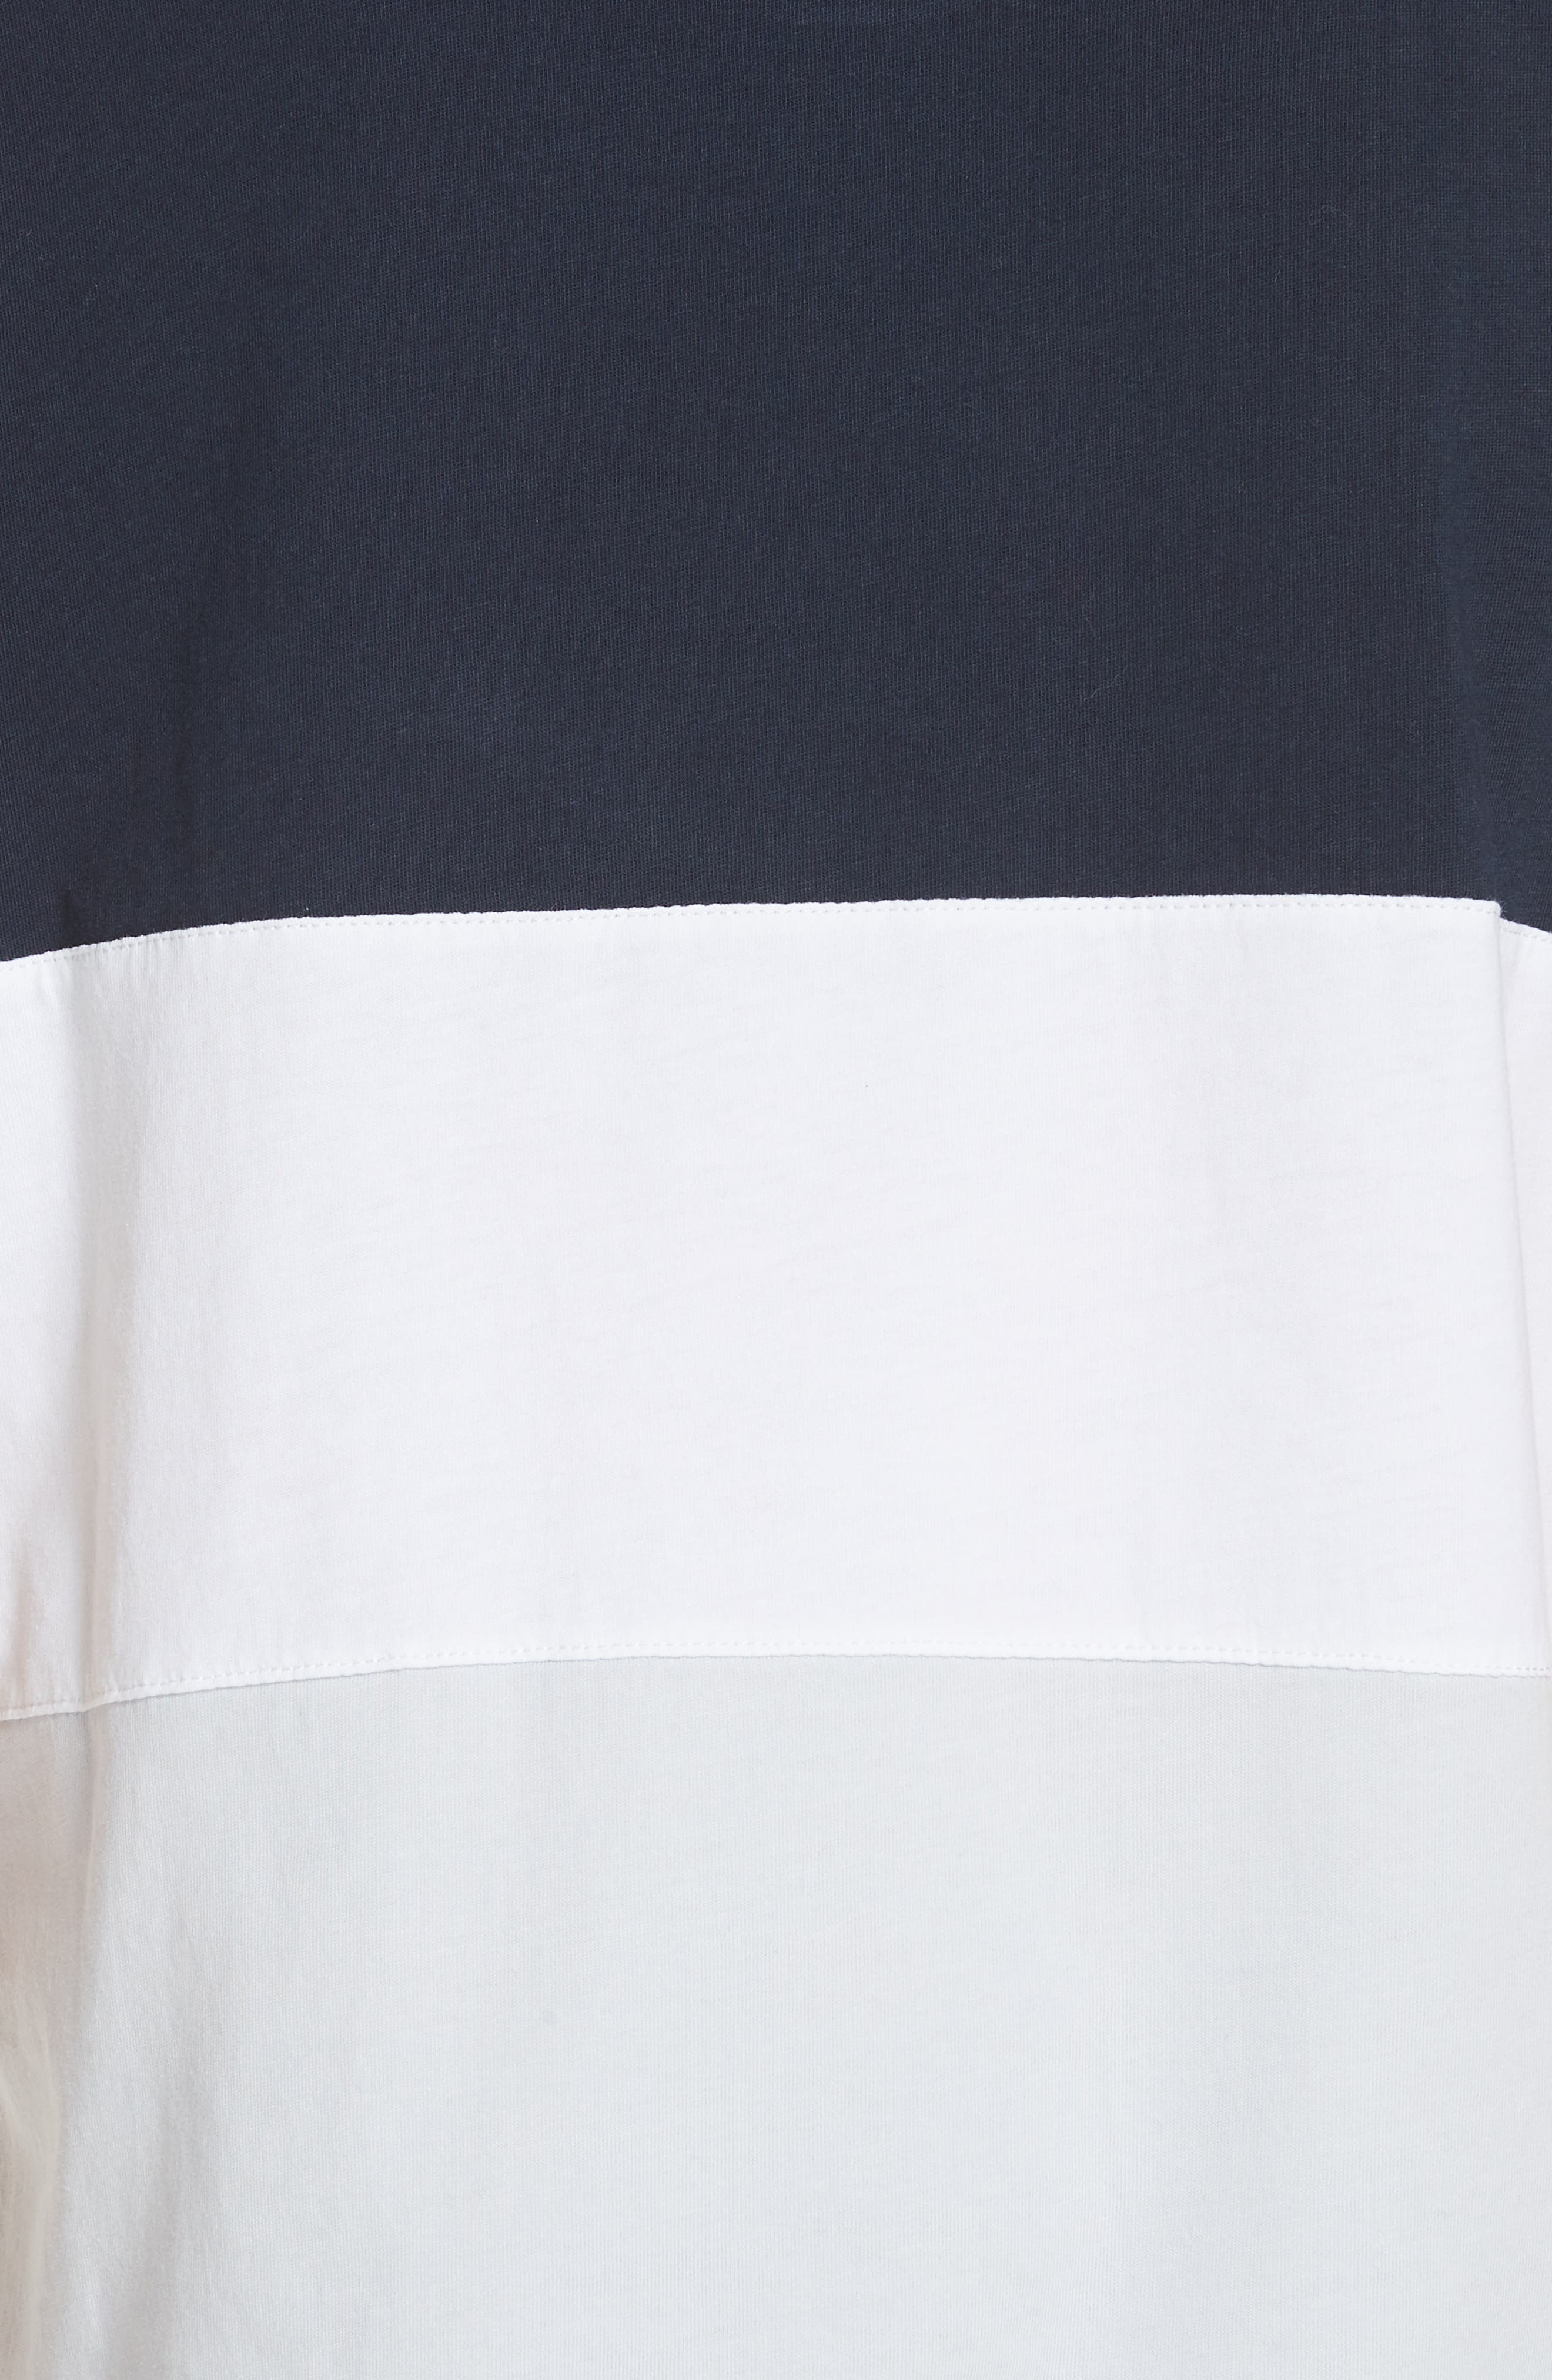 Colorblock Tee,                             Alternate thumbnail 5, color,                             475